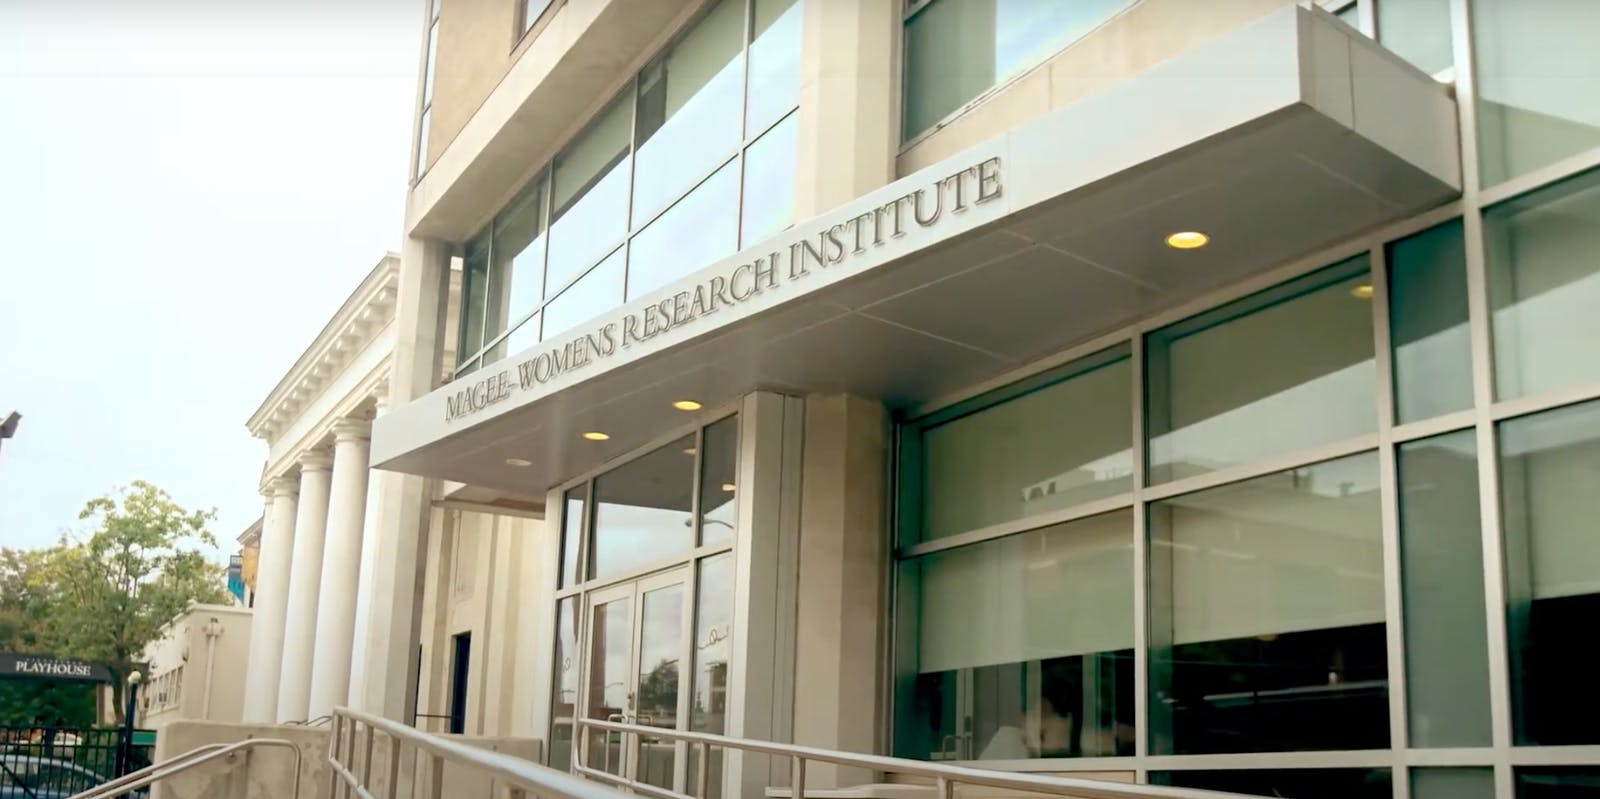 Magee-Women's Research Institute